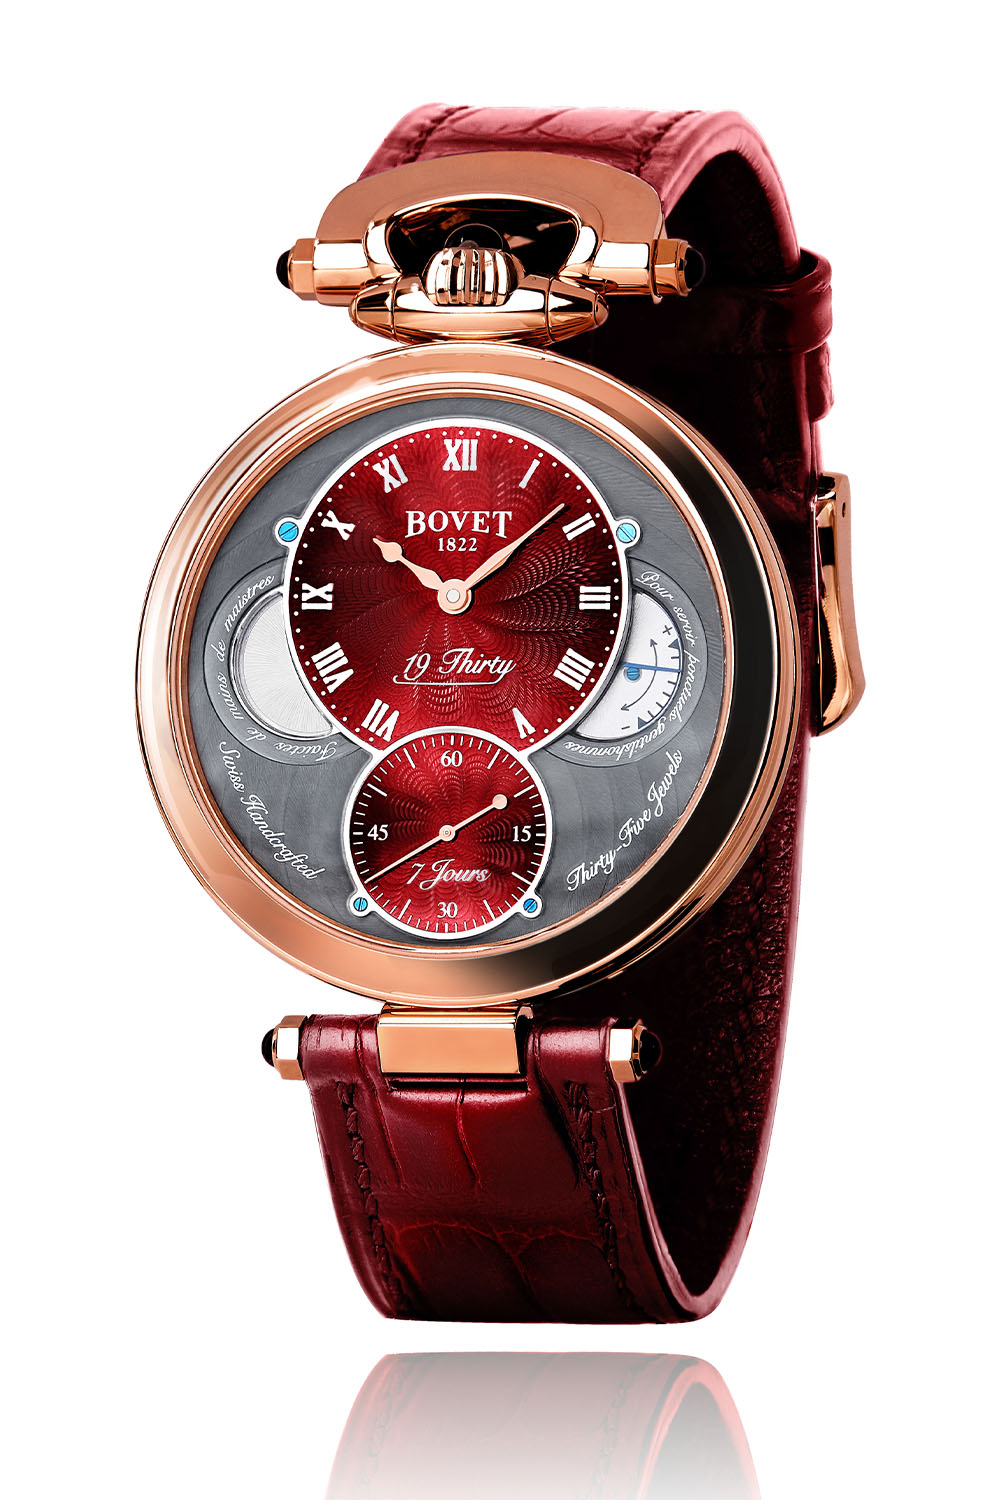 Bovet Fleurier 19Thirty Red Guilloche